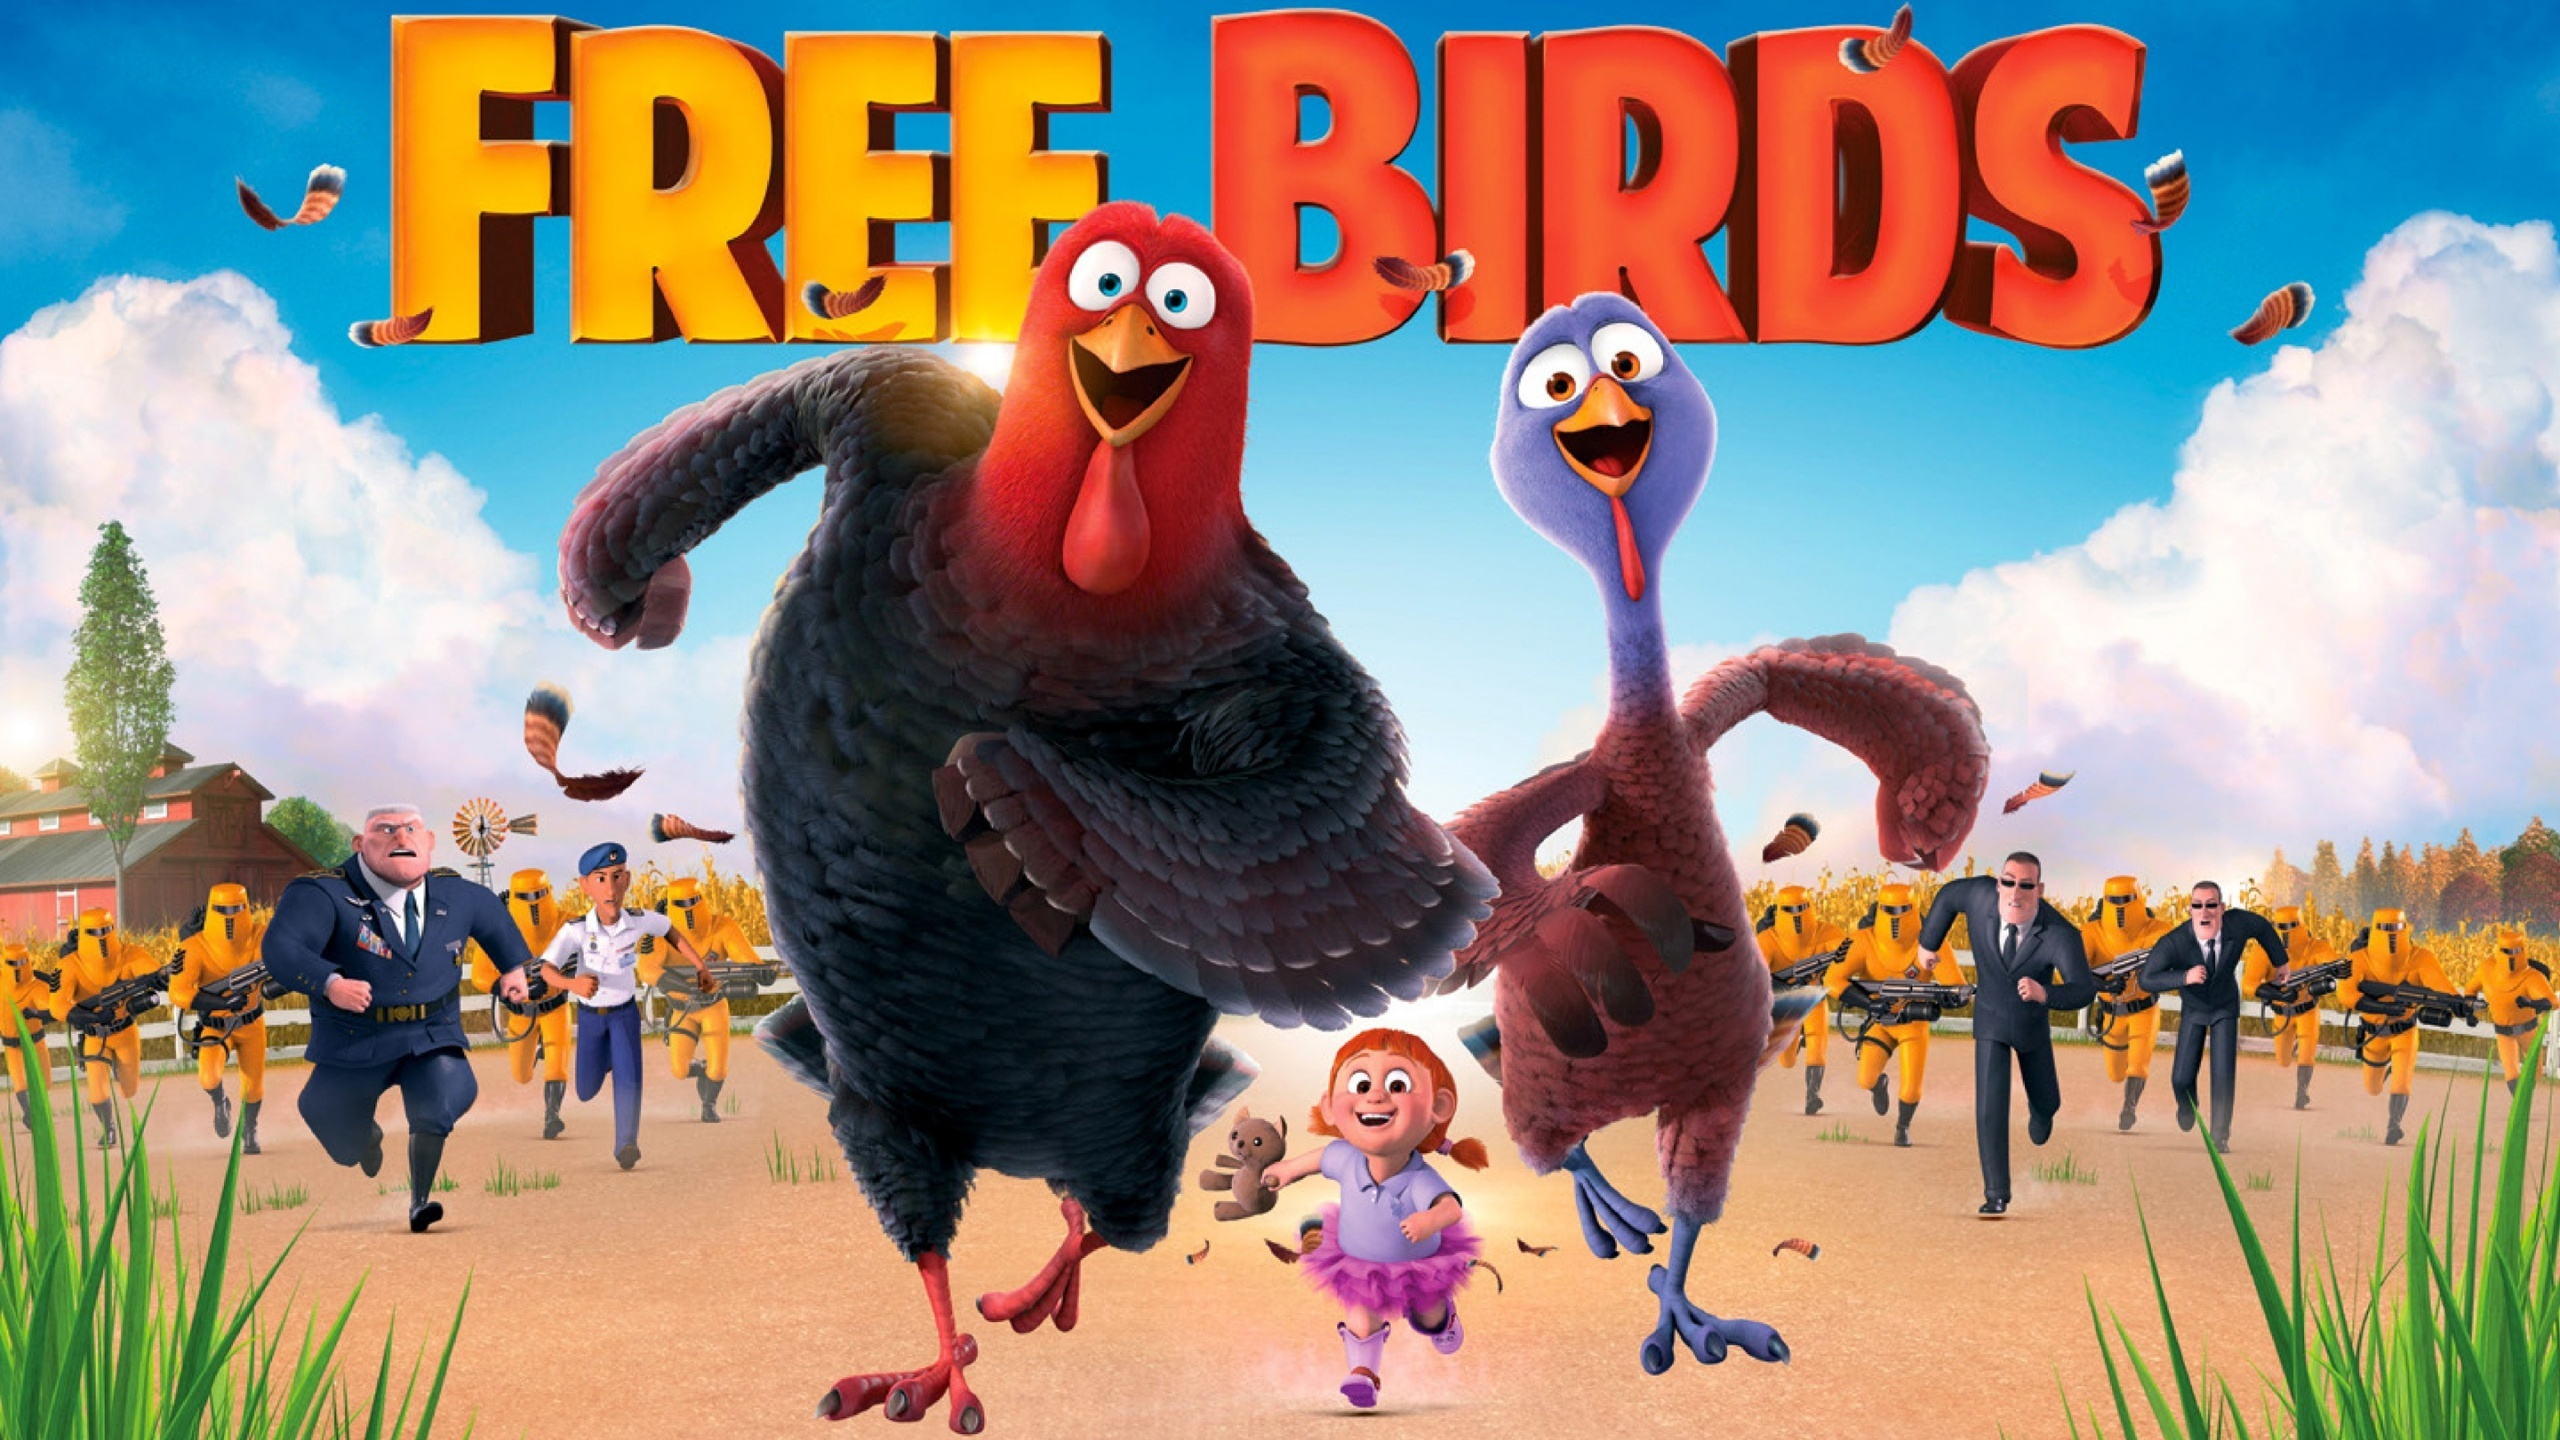 FREE BIRDS Now Available on Blu-Ray and DVD - Girl Gone Mom